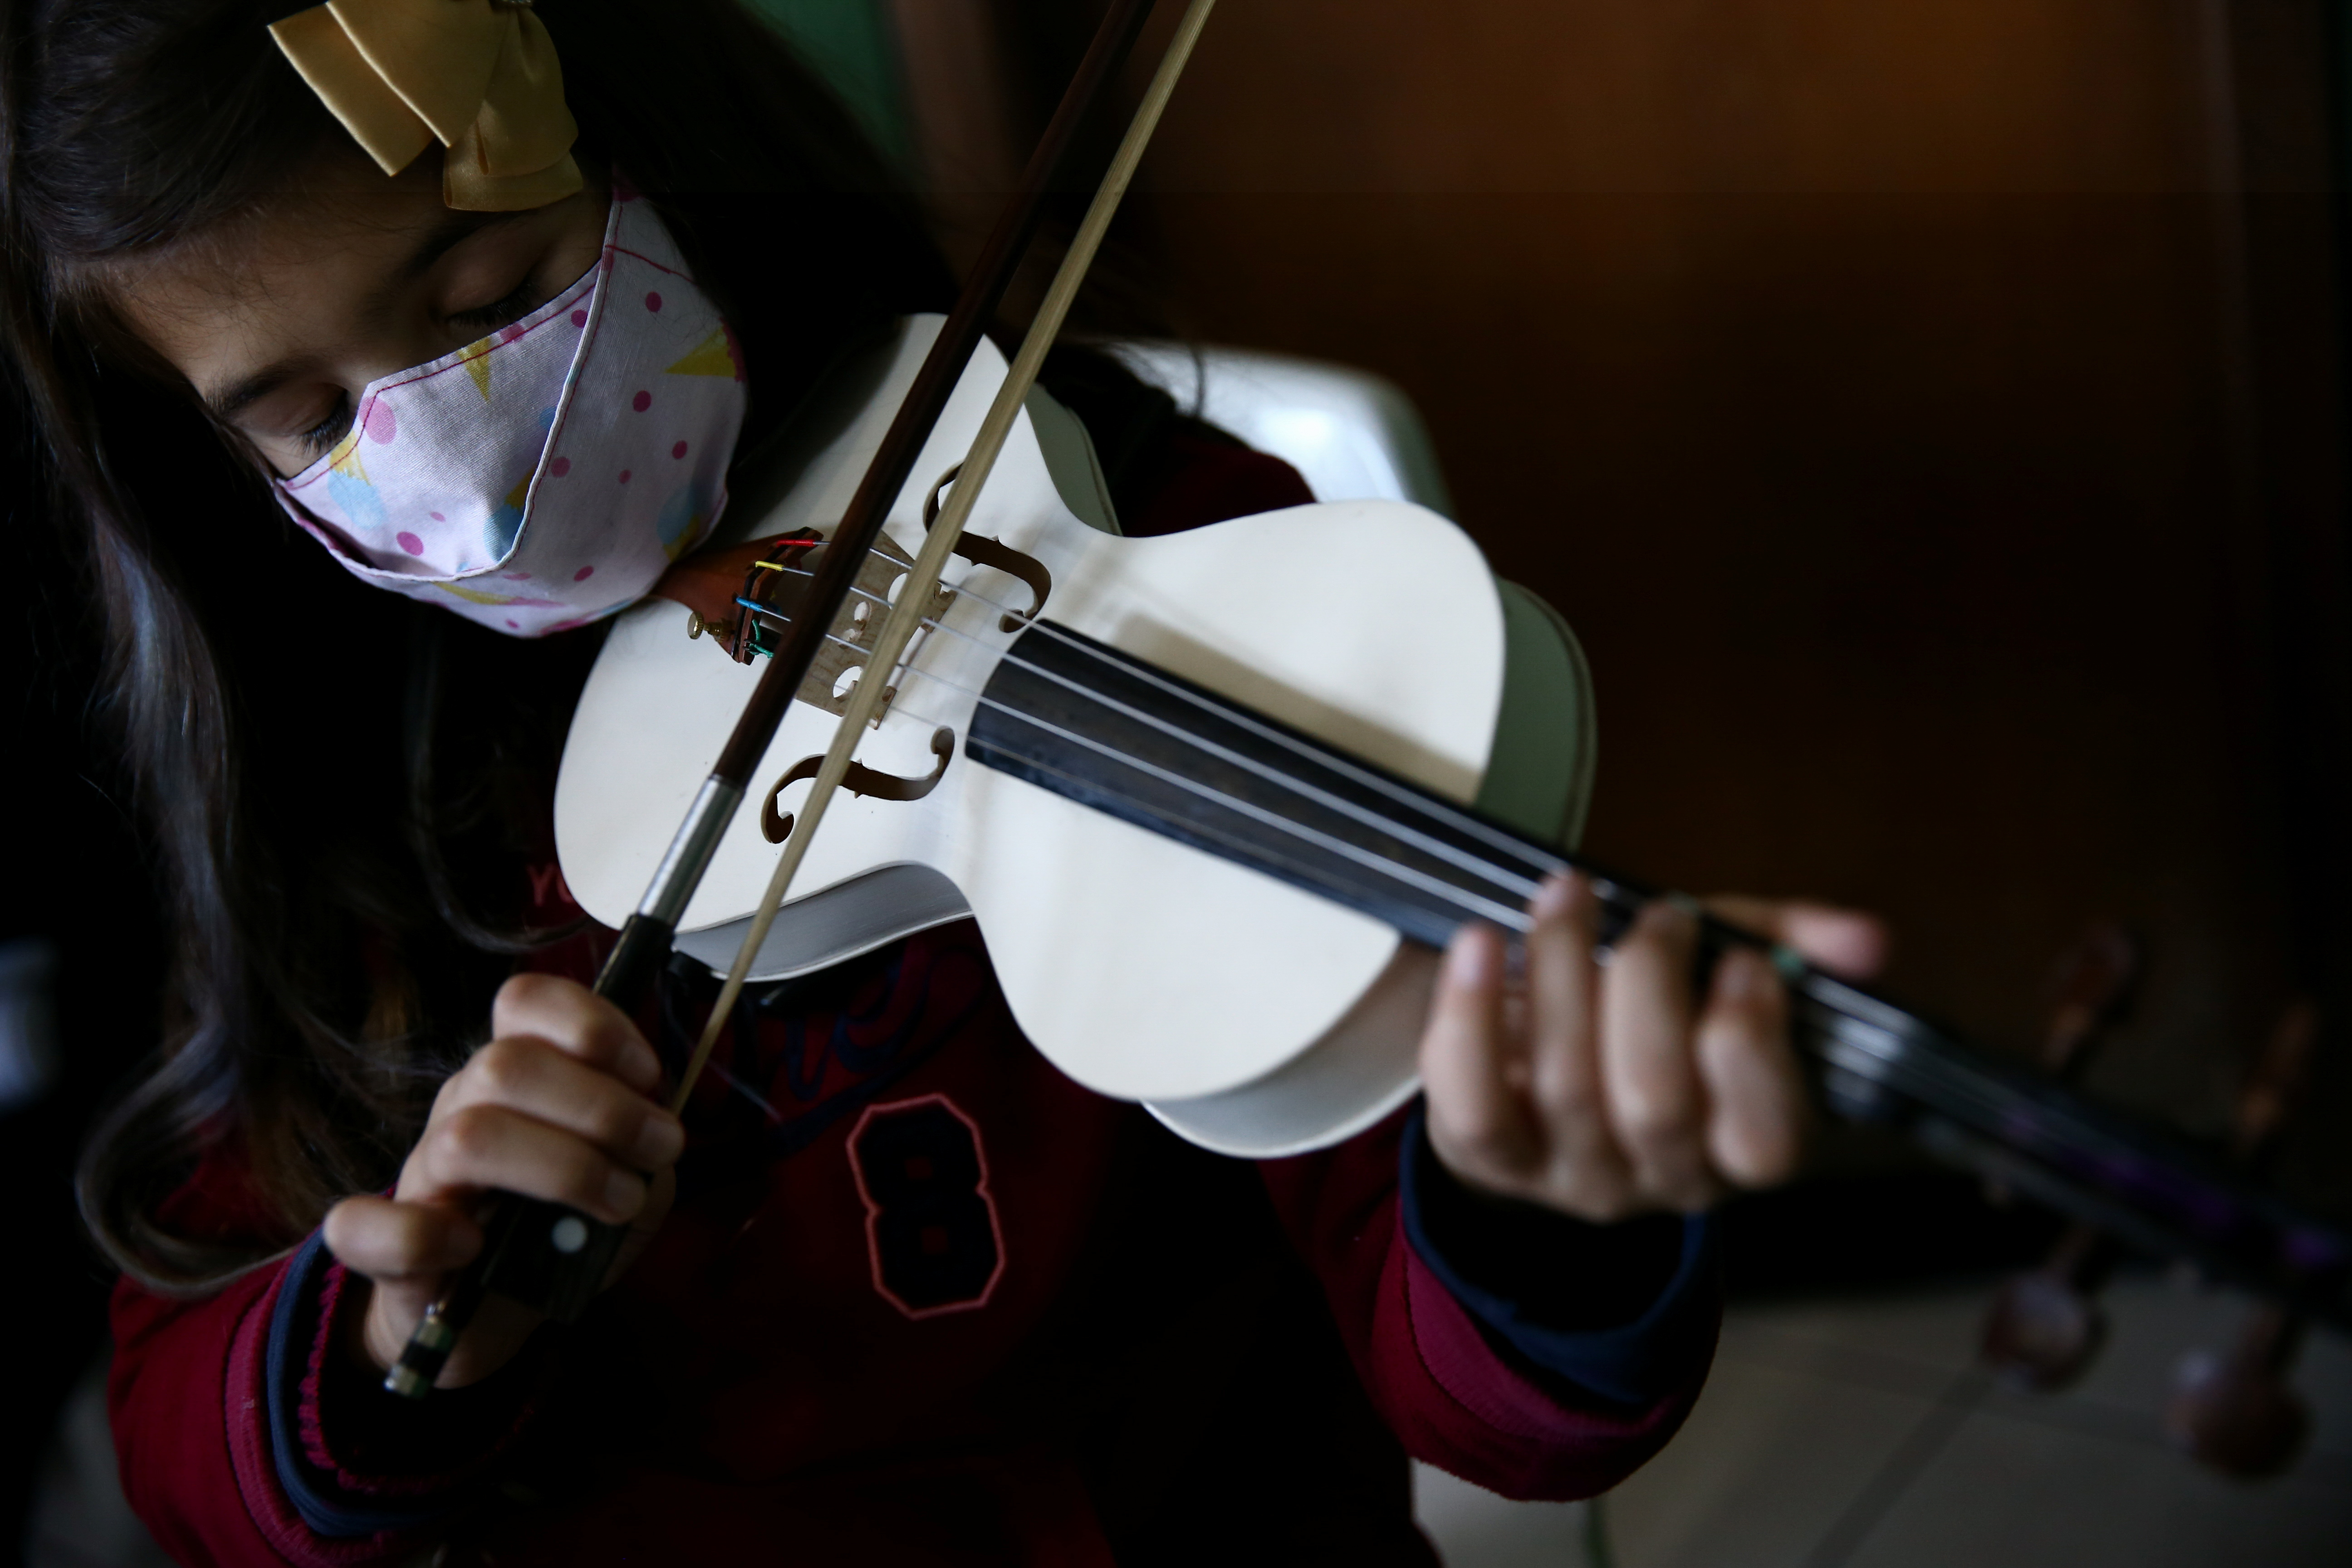 A student plays a violin made from PVC piping at Locomotiva Project, a free music school for at-risk children in Santo Andre, Brazil August 4, 2021. REUTERS/Carla Carniel